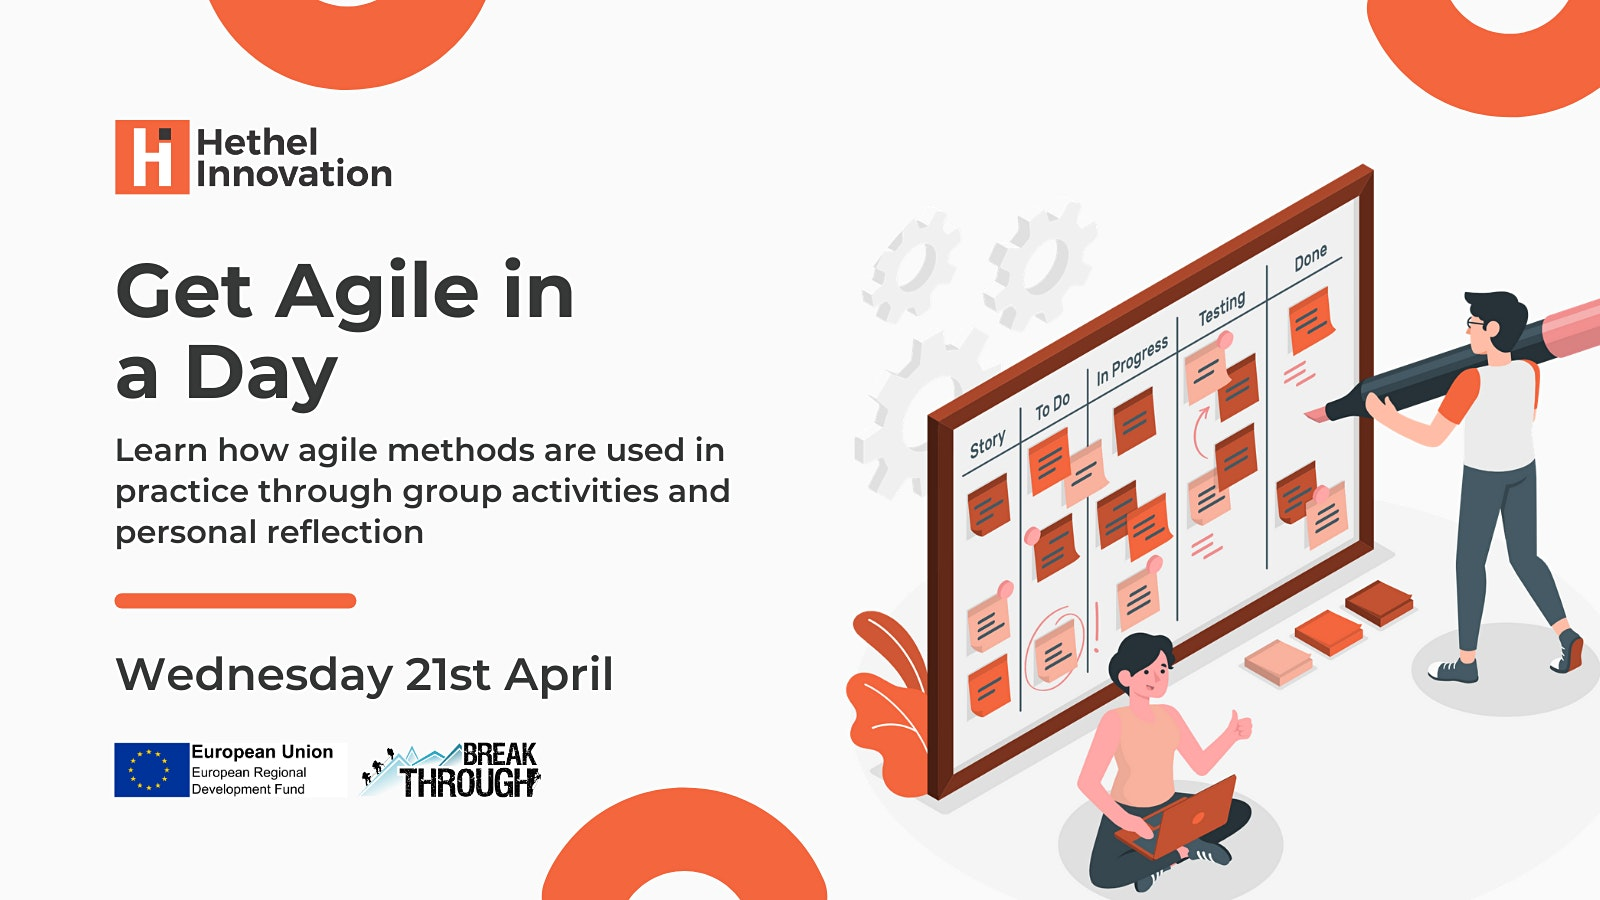 Get Agile in a Day